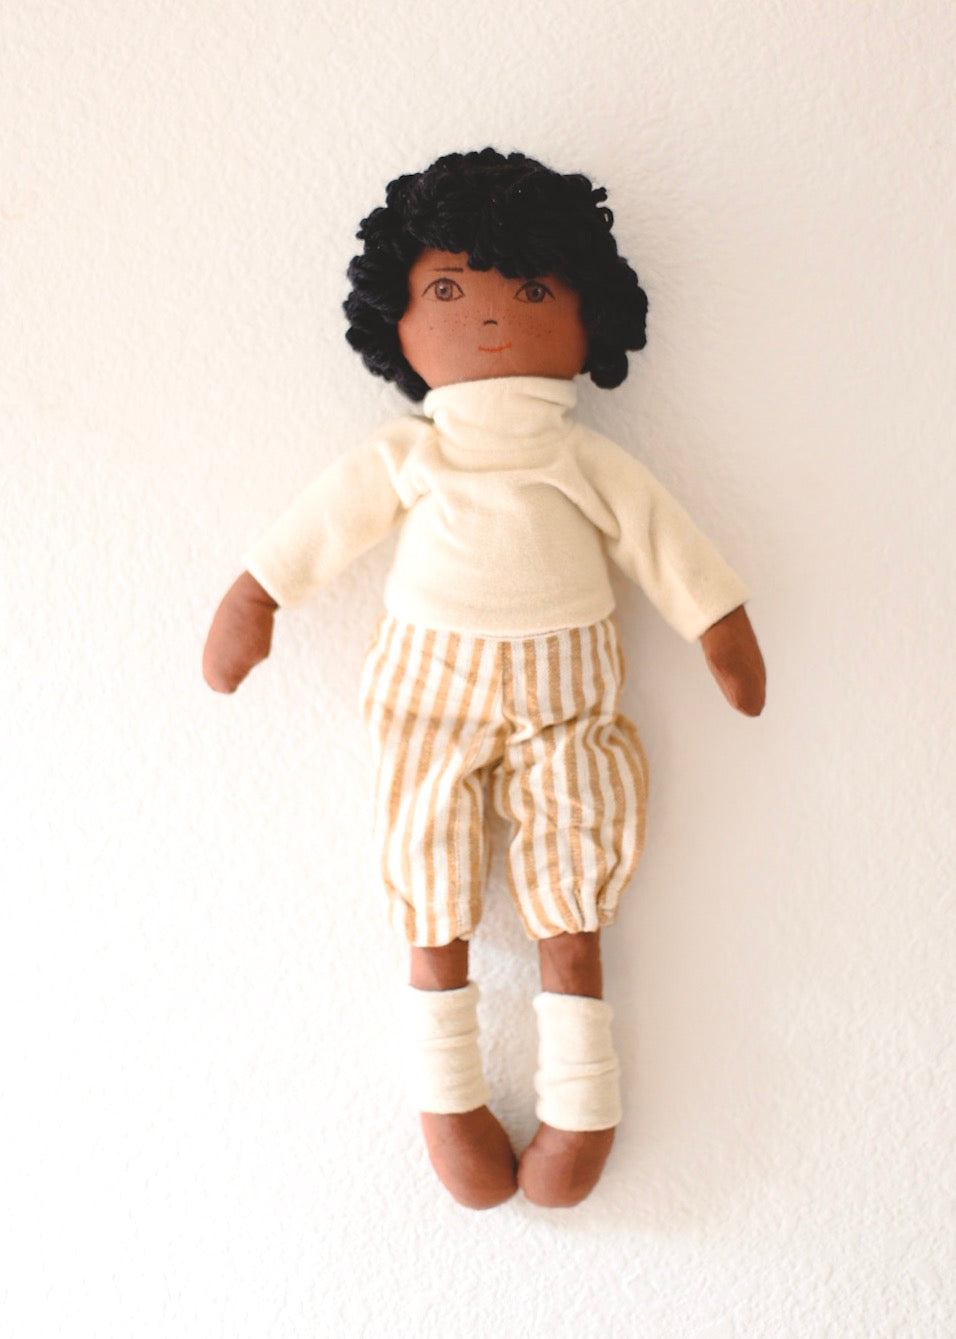 LUCAS - Handmade Heirloom Doll